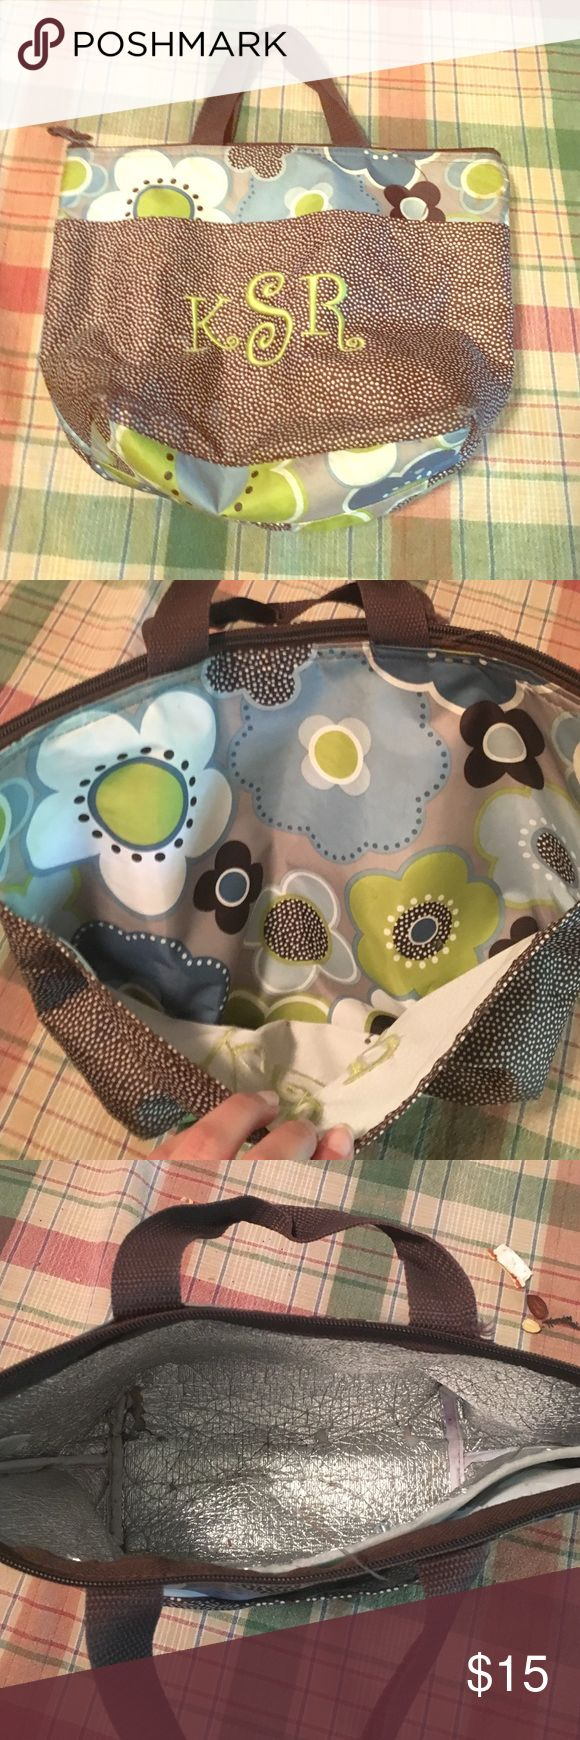 Thirty One lunch bag Used for 1 year and still in good condition! Brown w/ a flower pattern. Keeps your lunch cold and in a cute designed bag. Thirty One  Bags